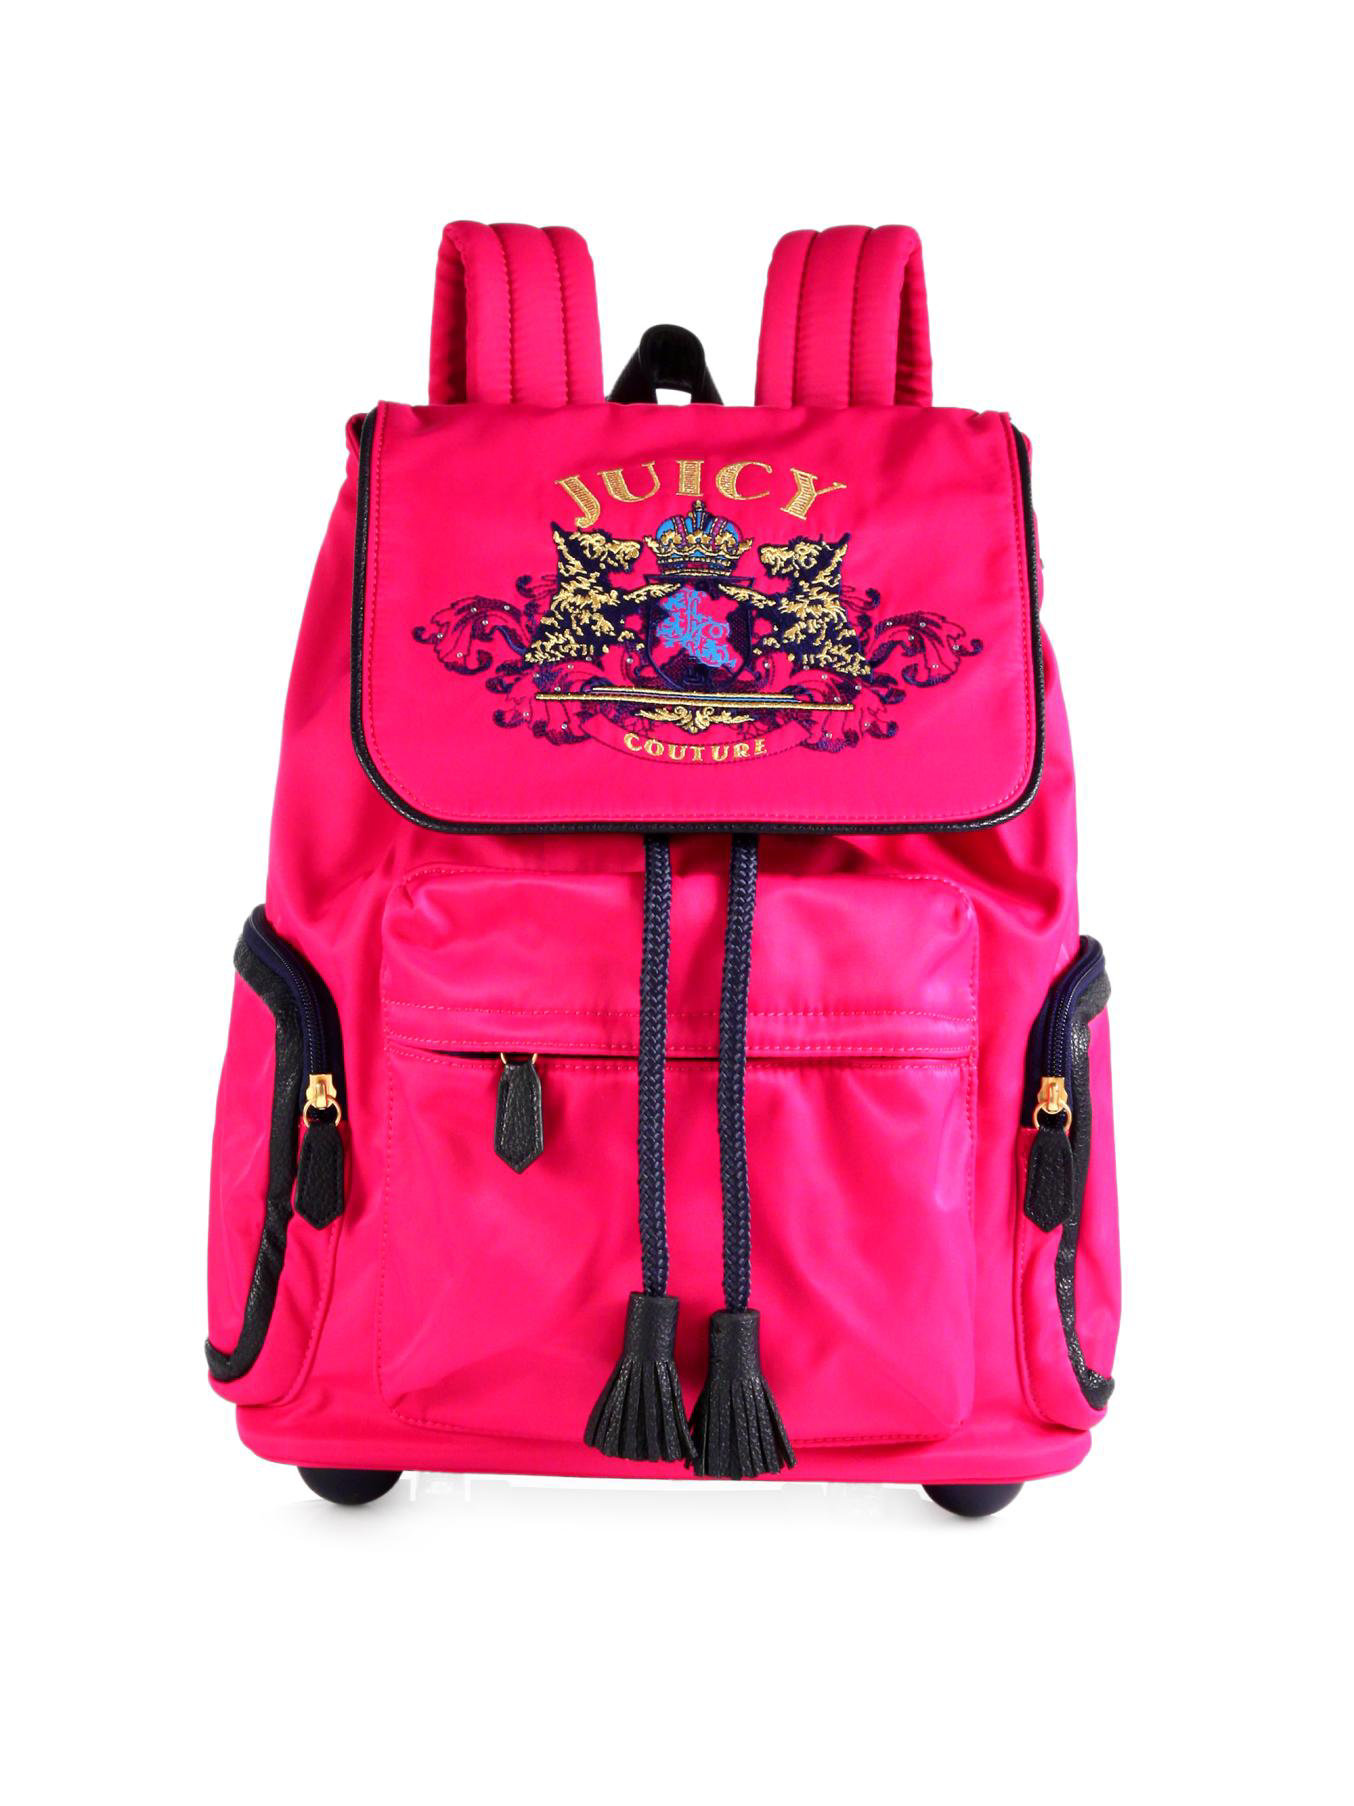 Rolling Backpacks For Girls On Sale - Crazy Backpacks